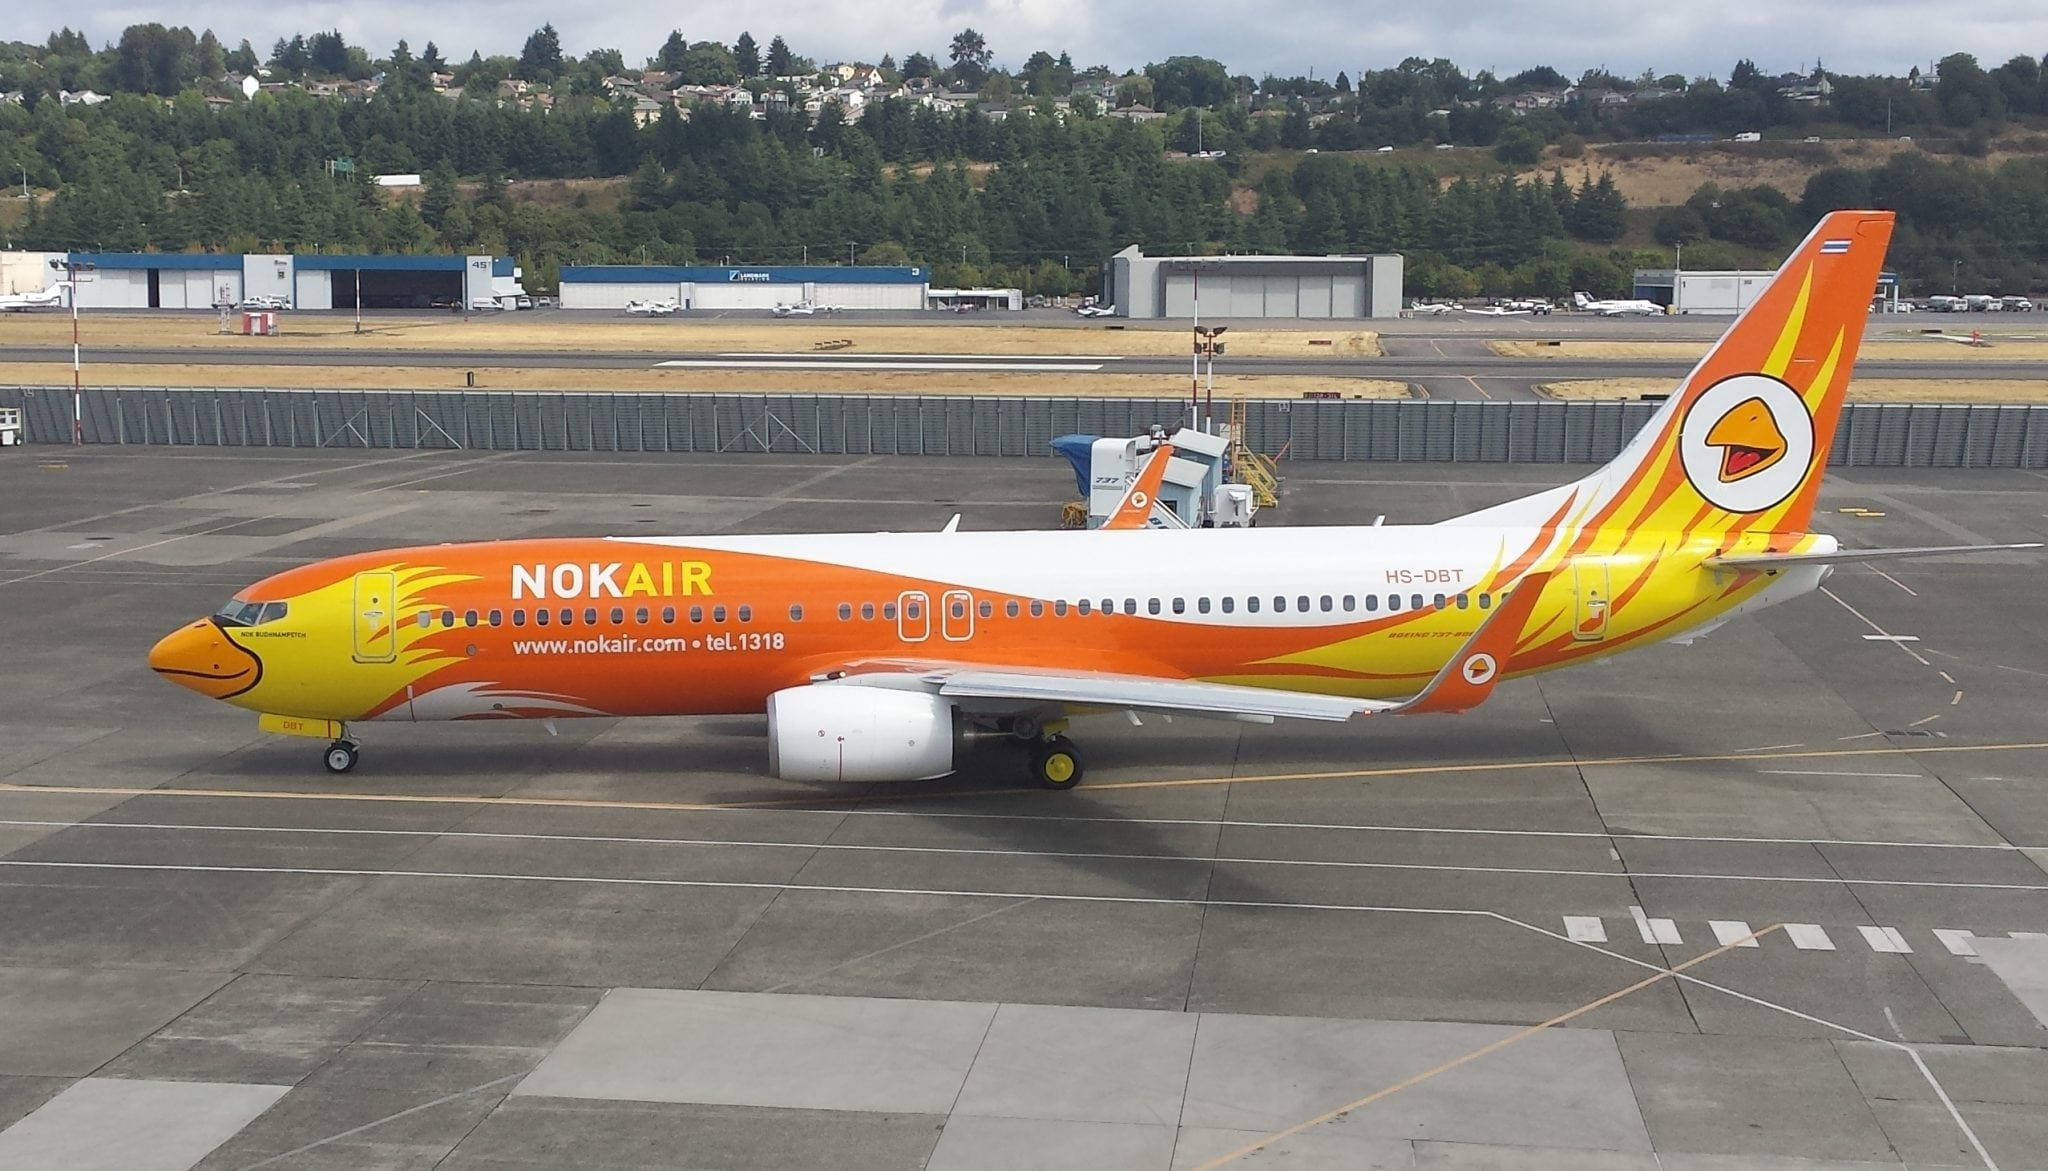 Nok Air 737-800 NG